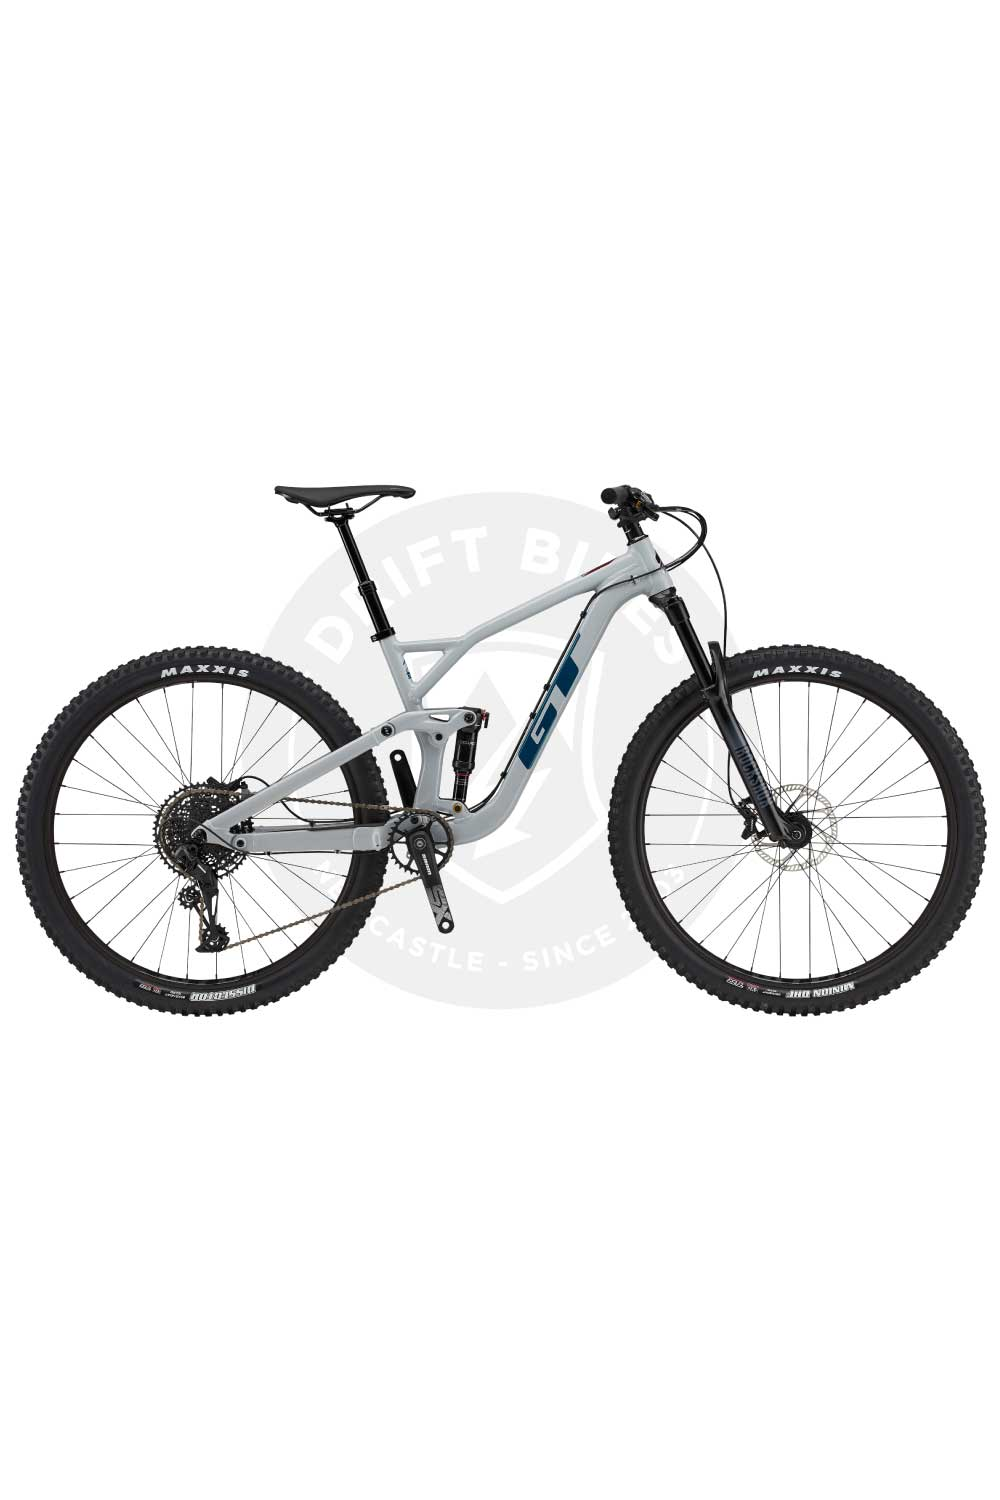 "GT Bicycles 2021 Sensor Comp 29"" Mountain Bike"